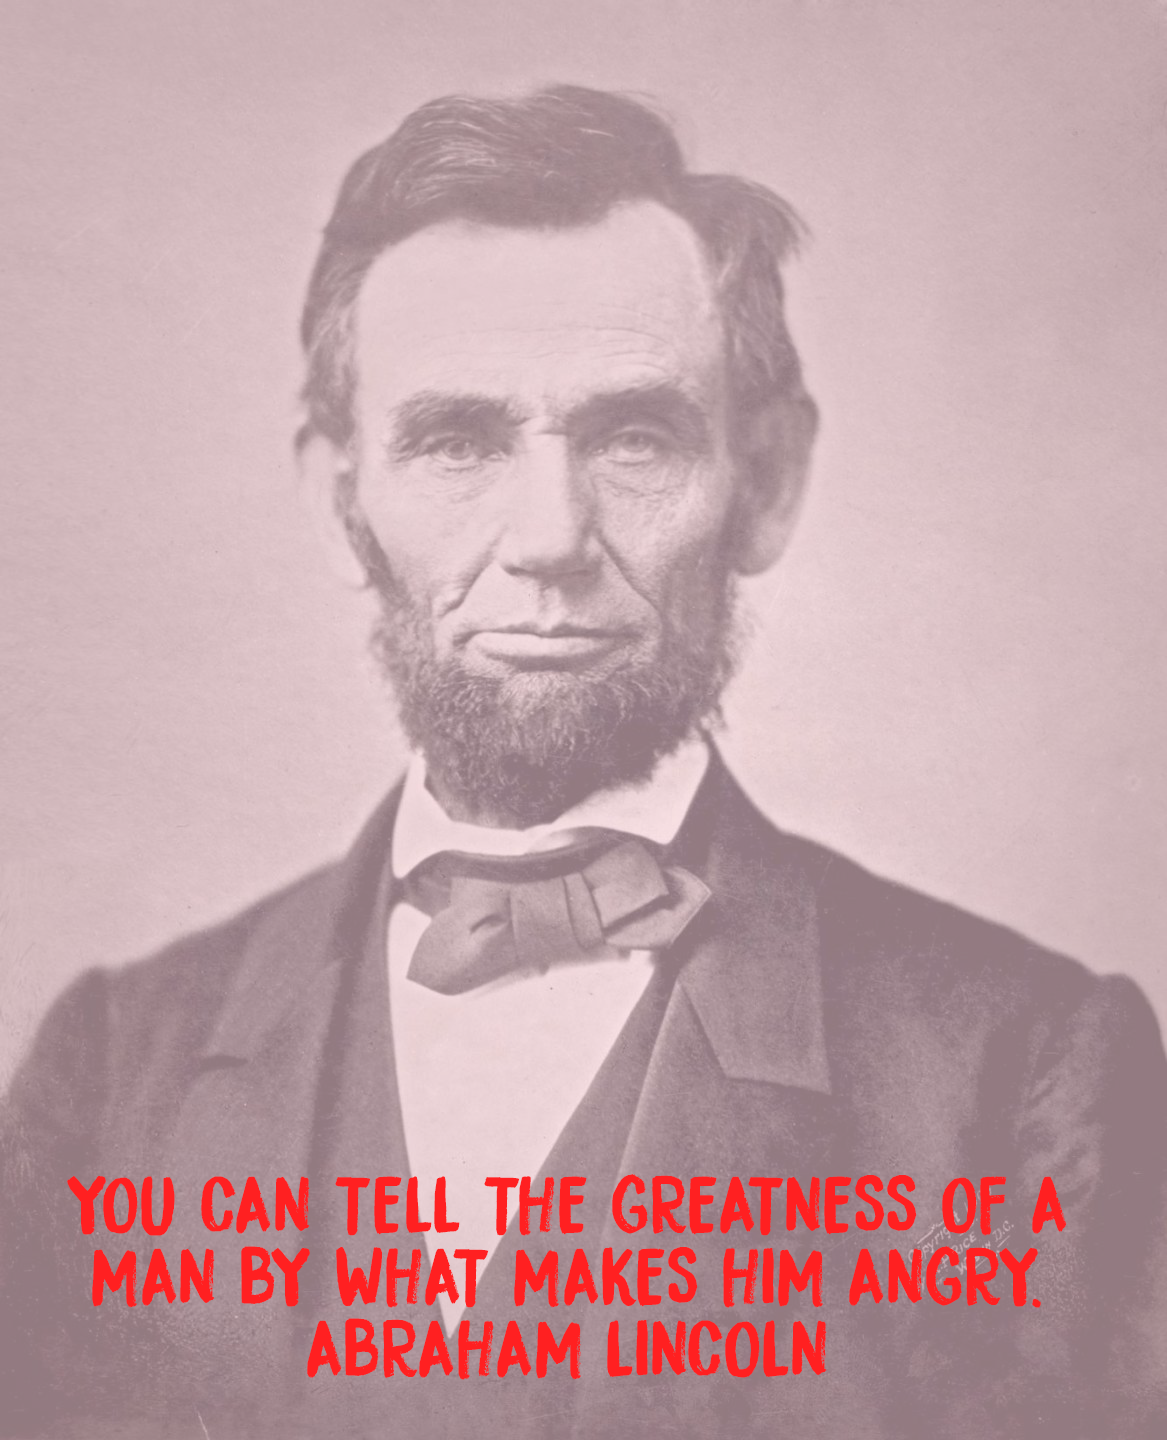 Jackie Daily Photography   Monroe, Louisiana Photographer   Happy Presidents Day   Abraham Lincoln   Quote   Sterlington